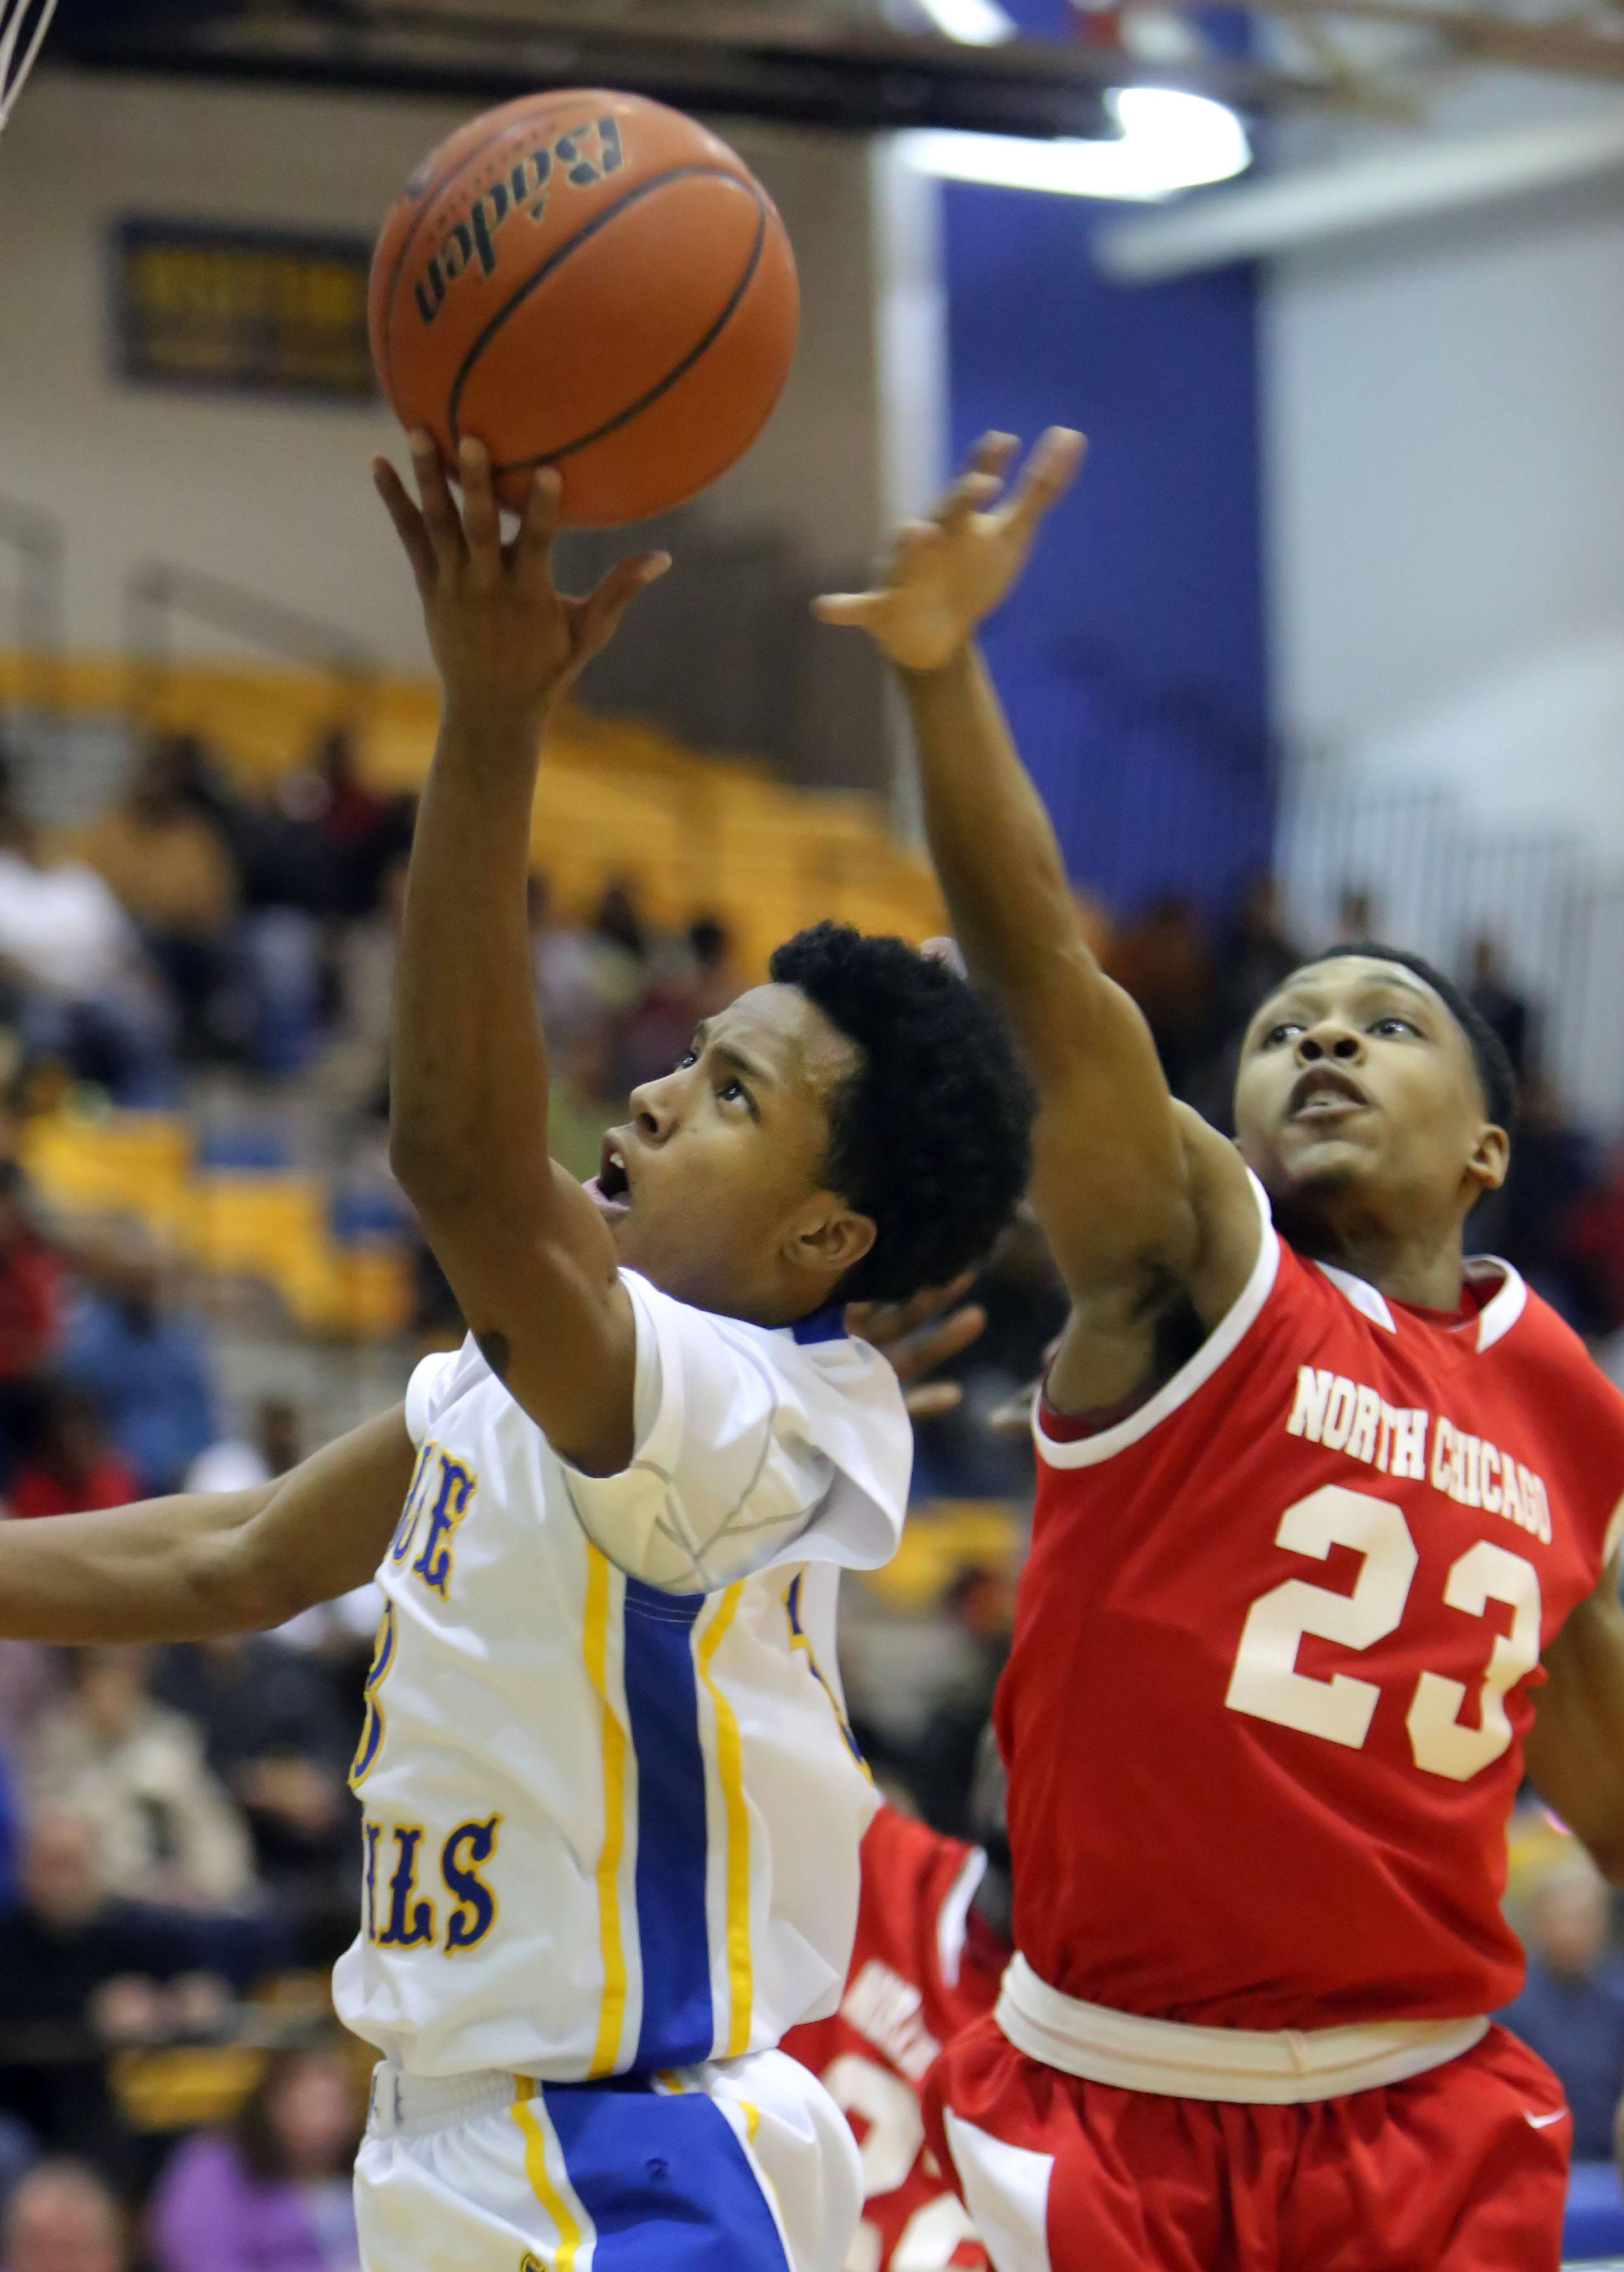 Warren's Eric Gillespie, left, drives past North Chicago's Jamero Shelton.